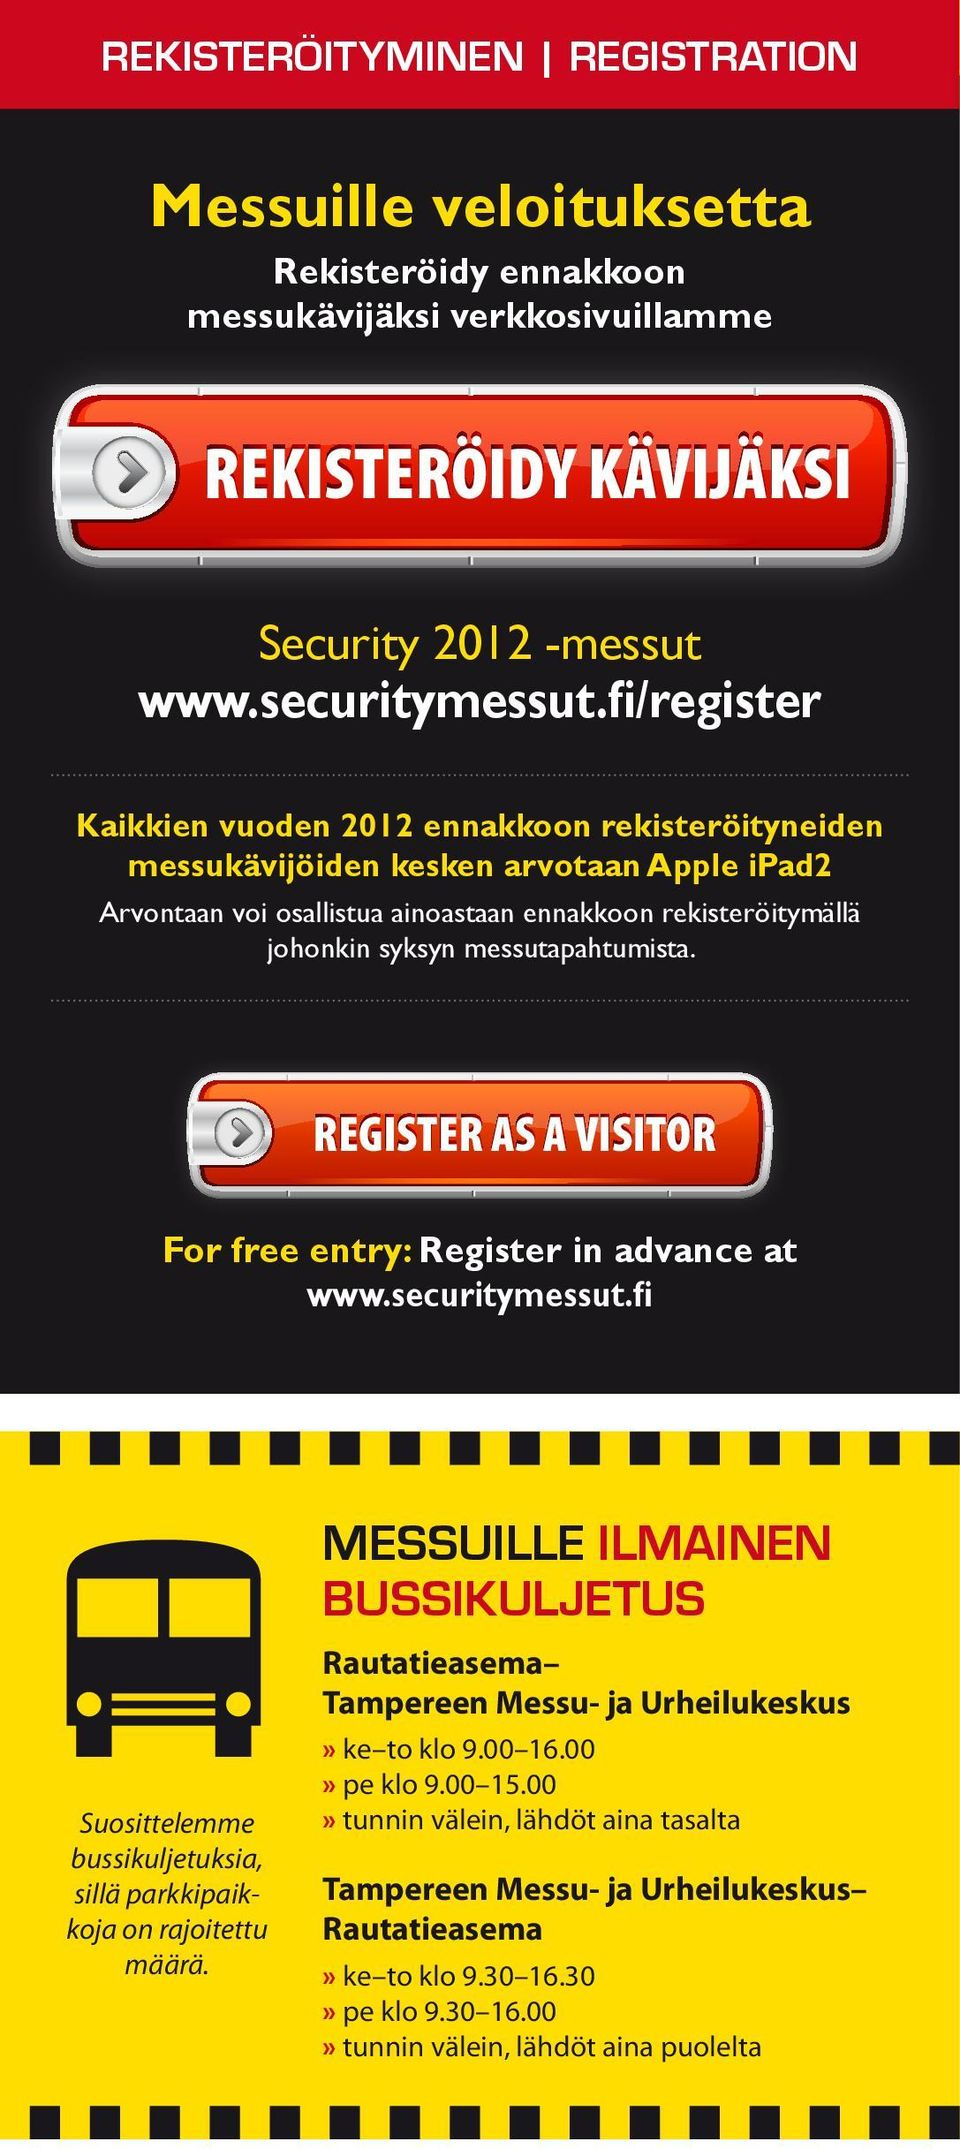 messutapahtumista. REGISTER AS A VISITOR For free entry: Register in advance at www.securitymessut.fi Suosittelemme bussikuljetuksia, sillä parkkipaikkoja on rajoitettu määrä.